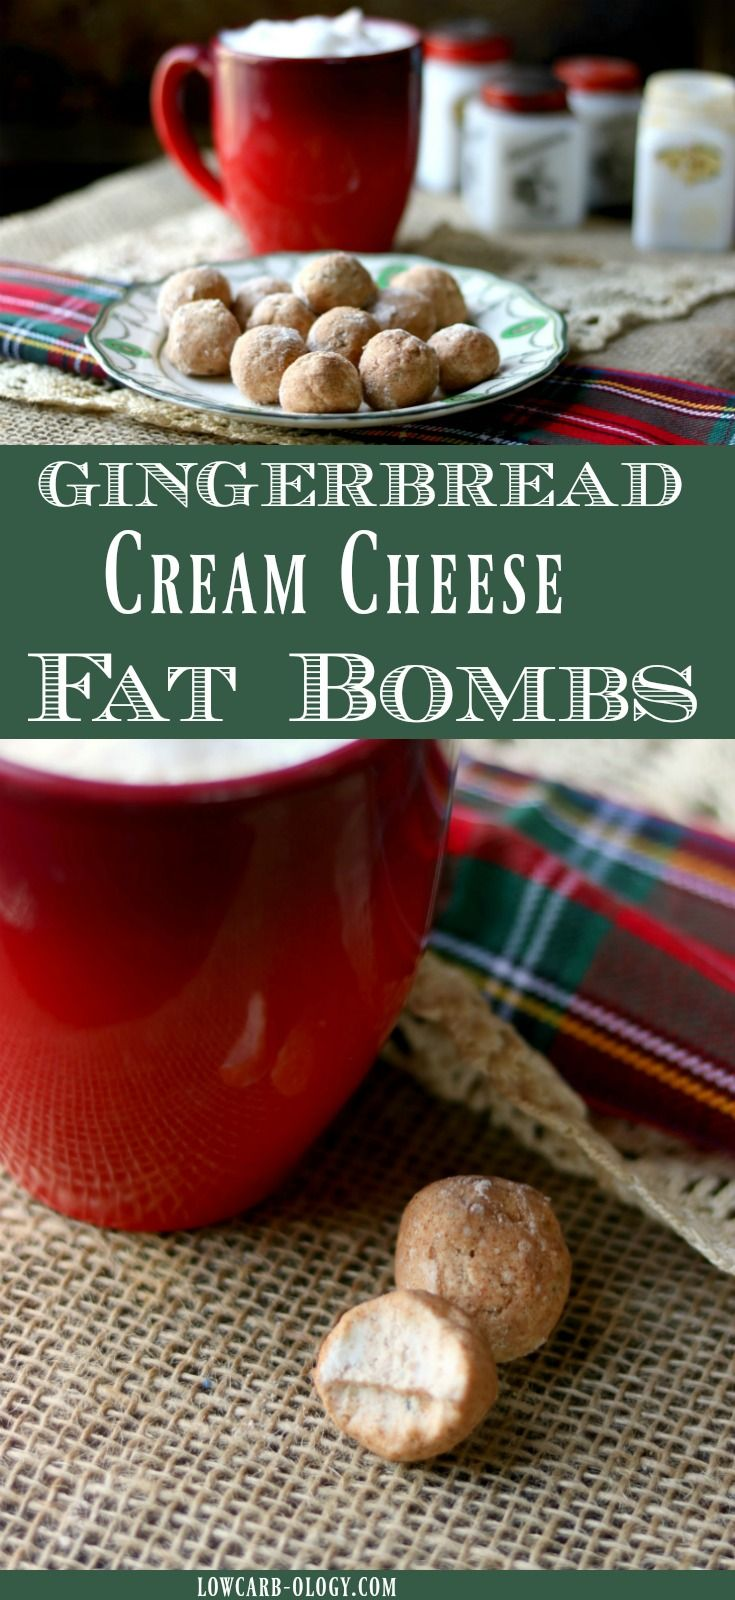 This cream cheese fat bombs recipe is the perfect way to resist holiday sweets and maintain your low carb lifestyle! A keto friendly snack like these gingerbread spice truffles will satisfy your sweet tooth and give you a feeling of being